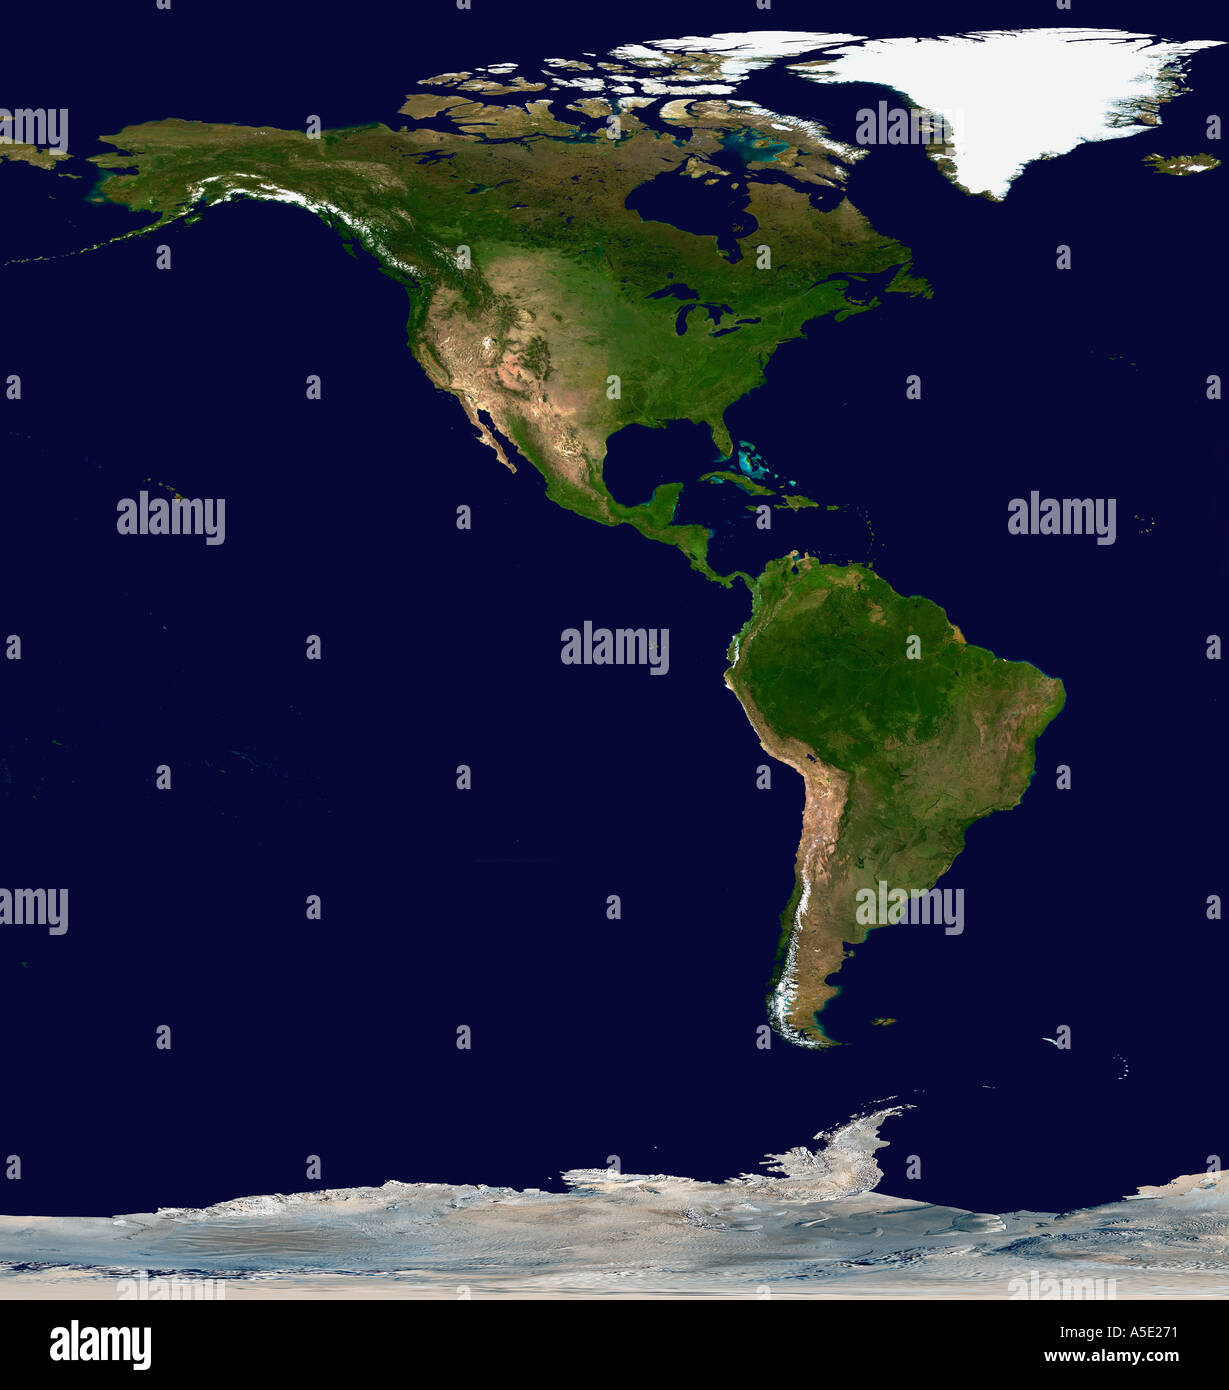 Satellite Image of North and South America Earth from Space ... on future map of north america, printable map of north america, erie canal map north america, geophysical map of north america, vancouver north america, view satellite map north america, topographical map of north america, physical map of north america, realtors of america, ecological map of north america, satellite imagery, neon map of north america, airports of north america, satellite middle east map, aerial photograph of north america, current temperature map north america, iowa map of north america, relief map of north america, population density map of north america, city of north america,